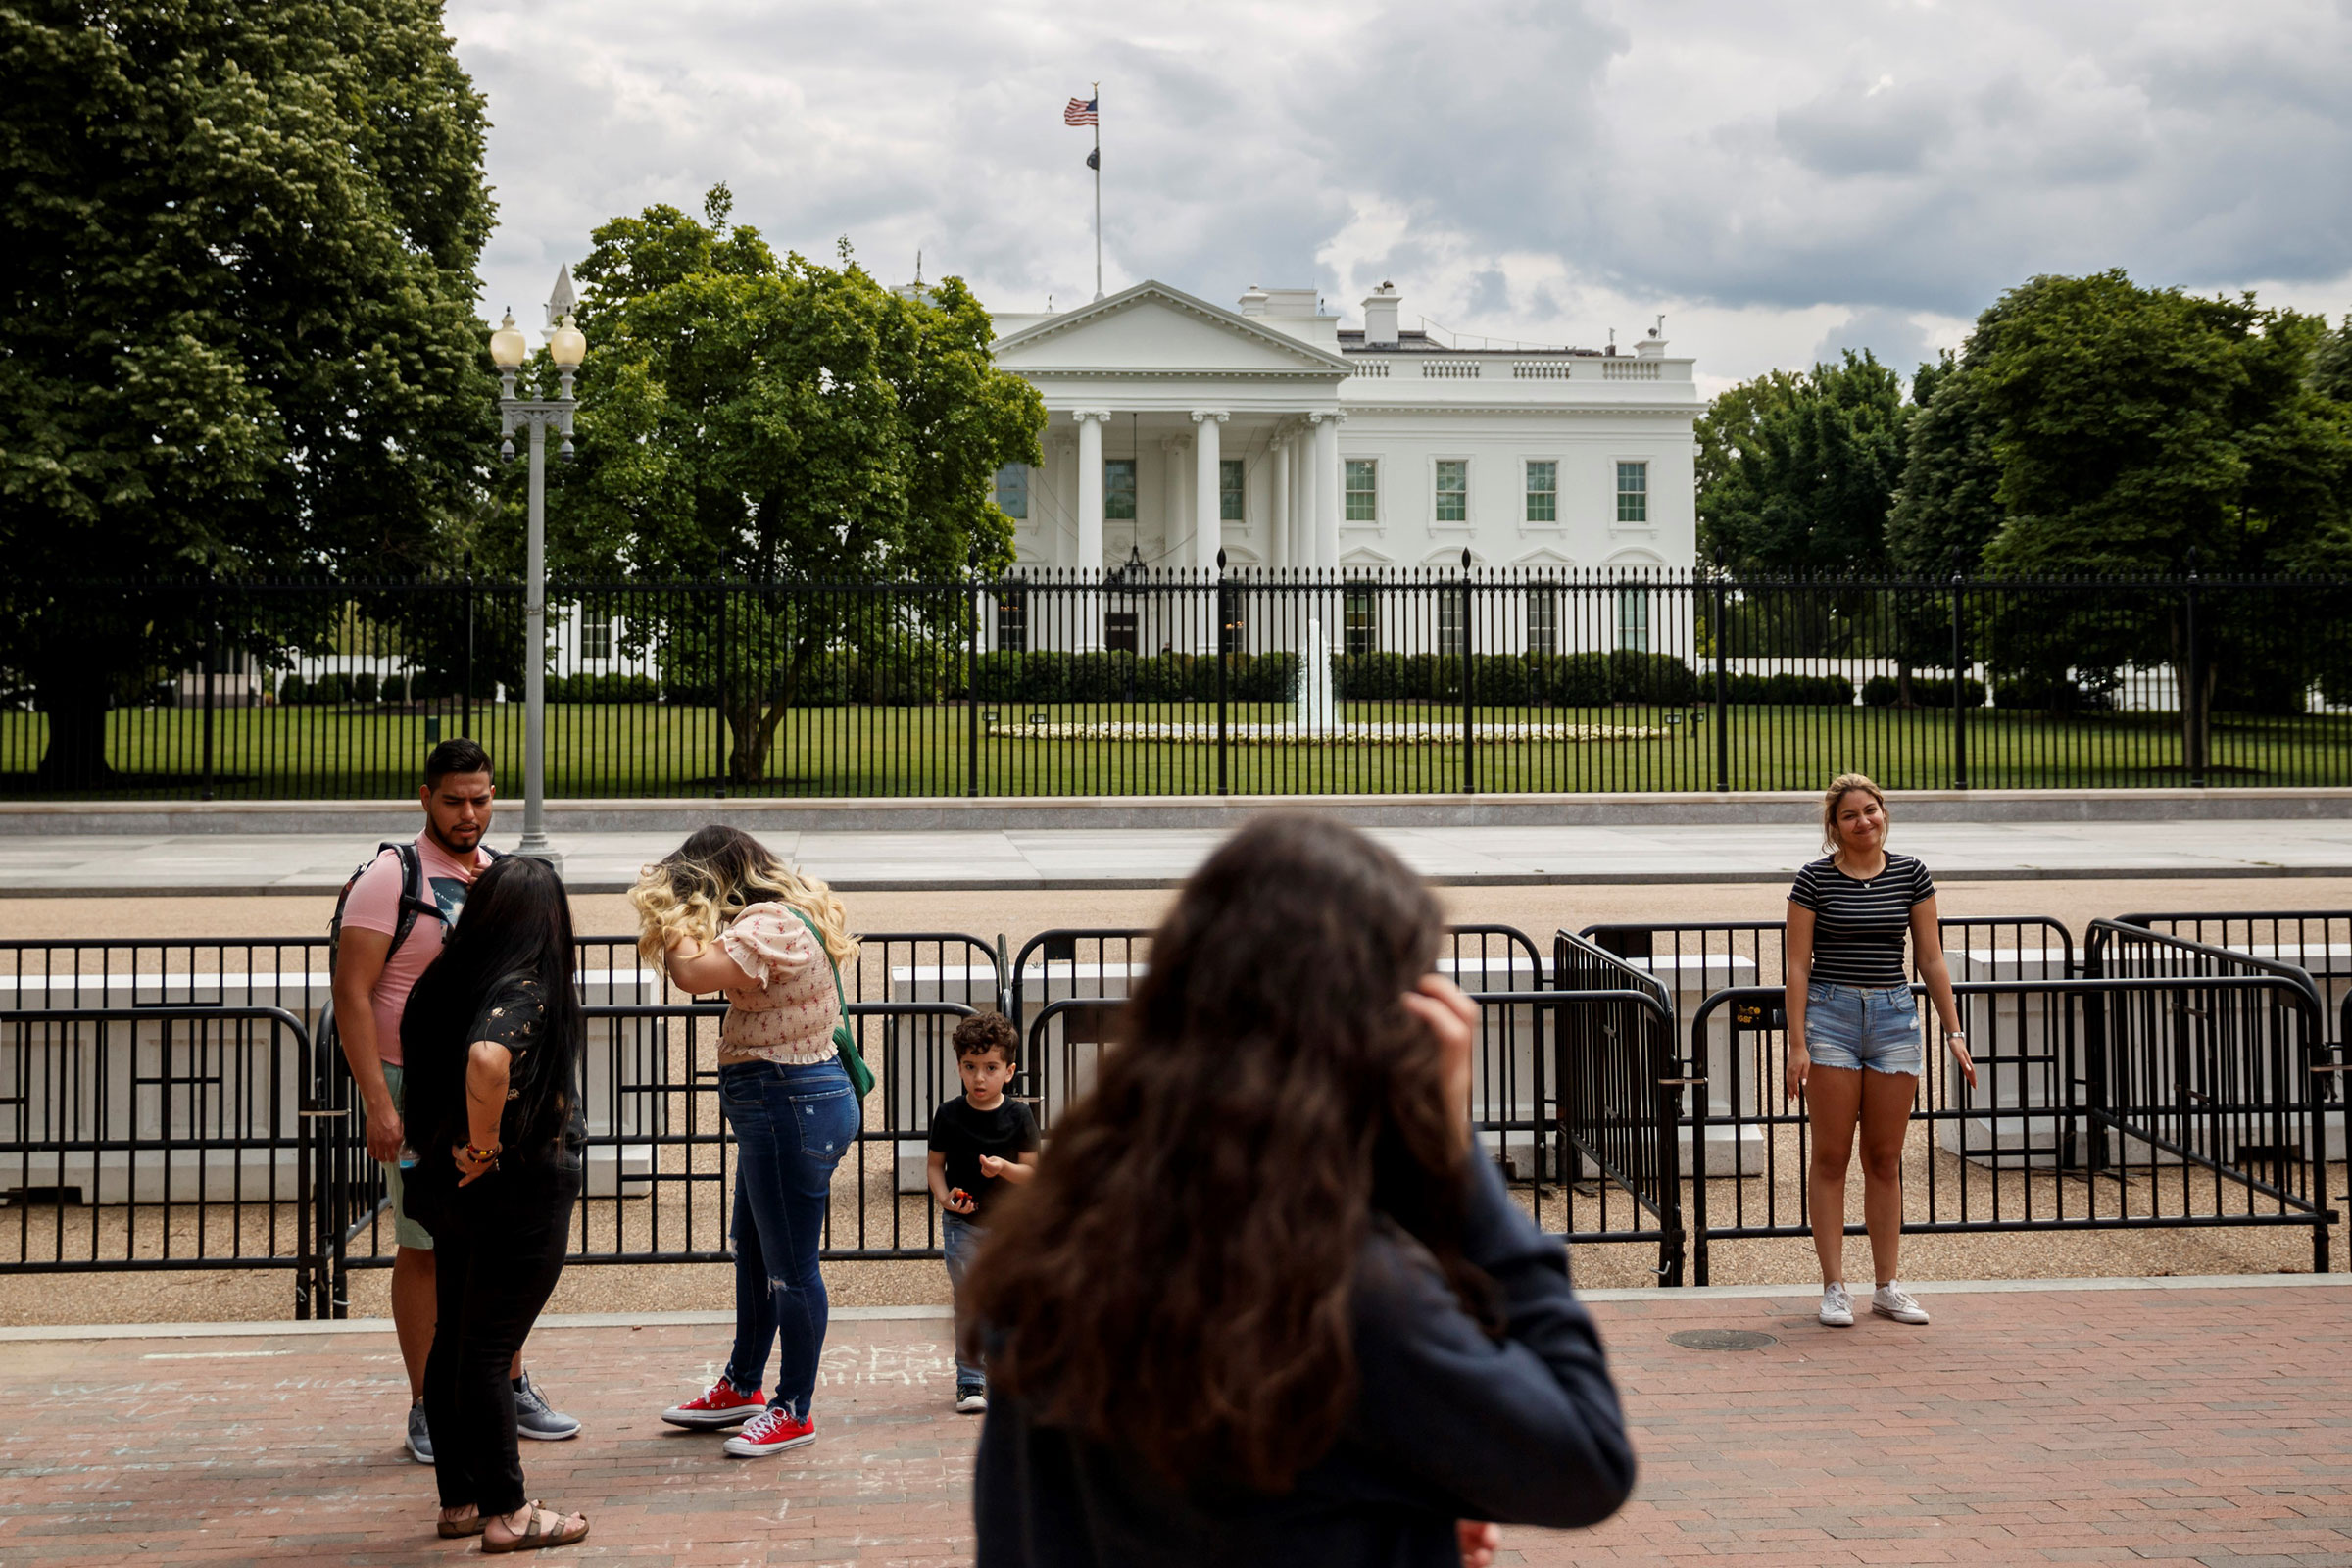 People are seen near the White House in Washington, on May 17, 2021.